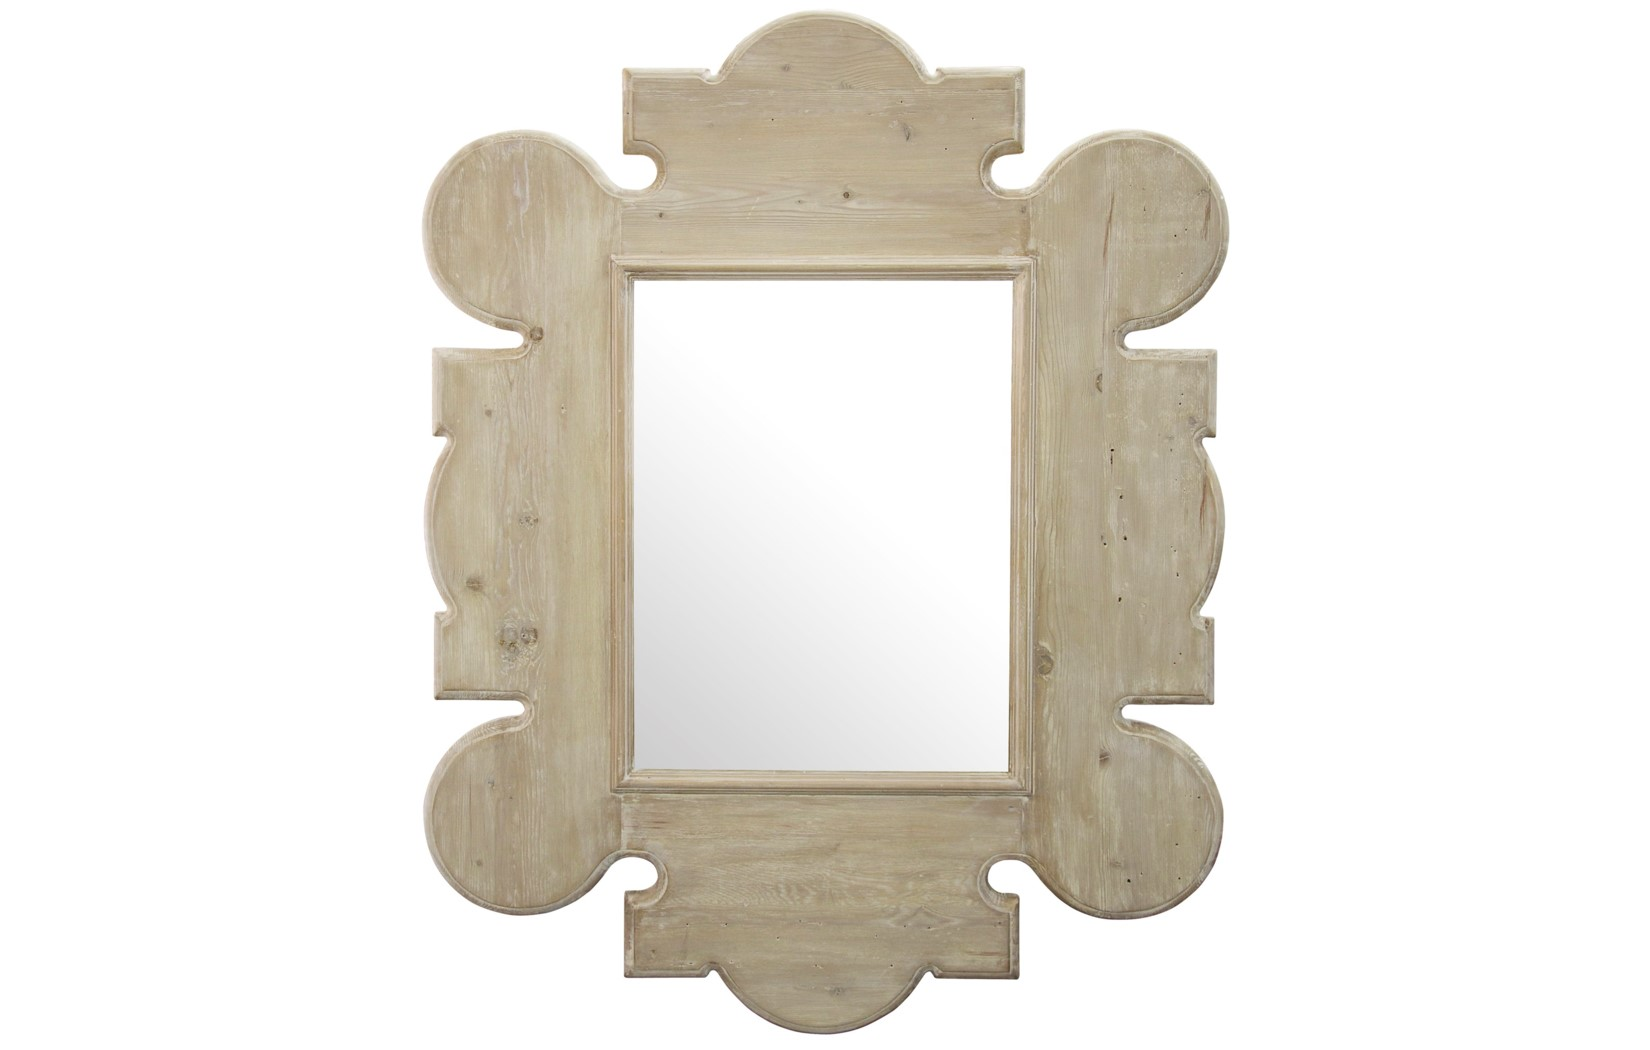 Cfc reclaimed lumber gothic mirror wall amipublicfo Gallery